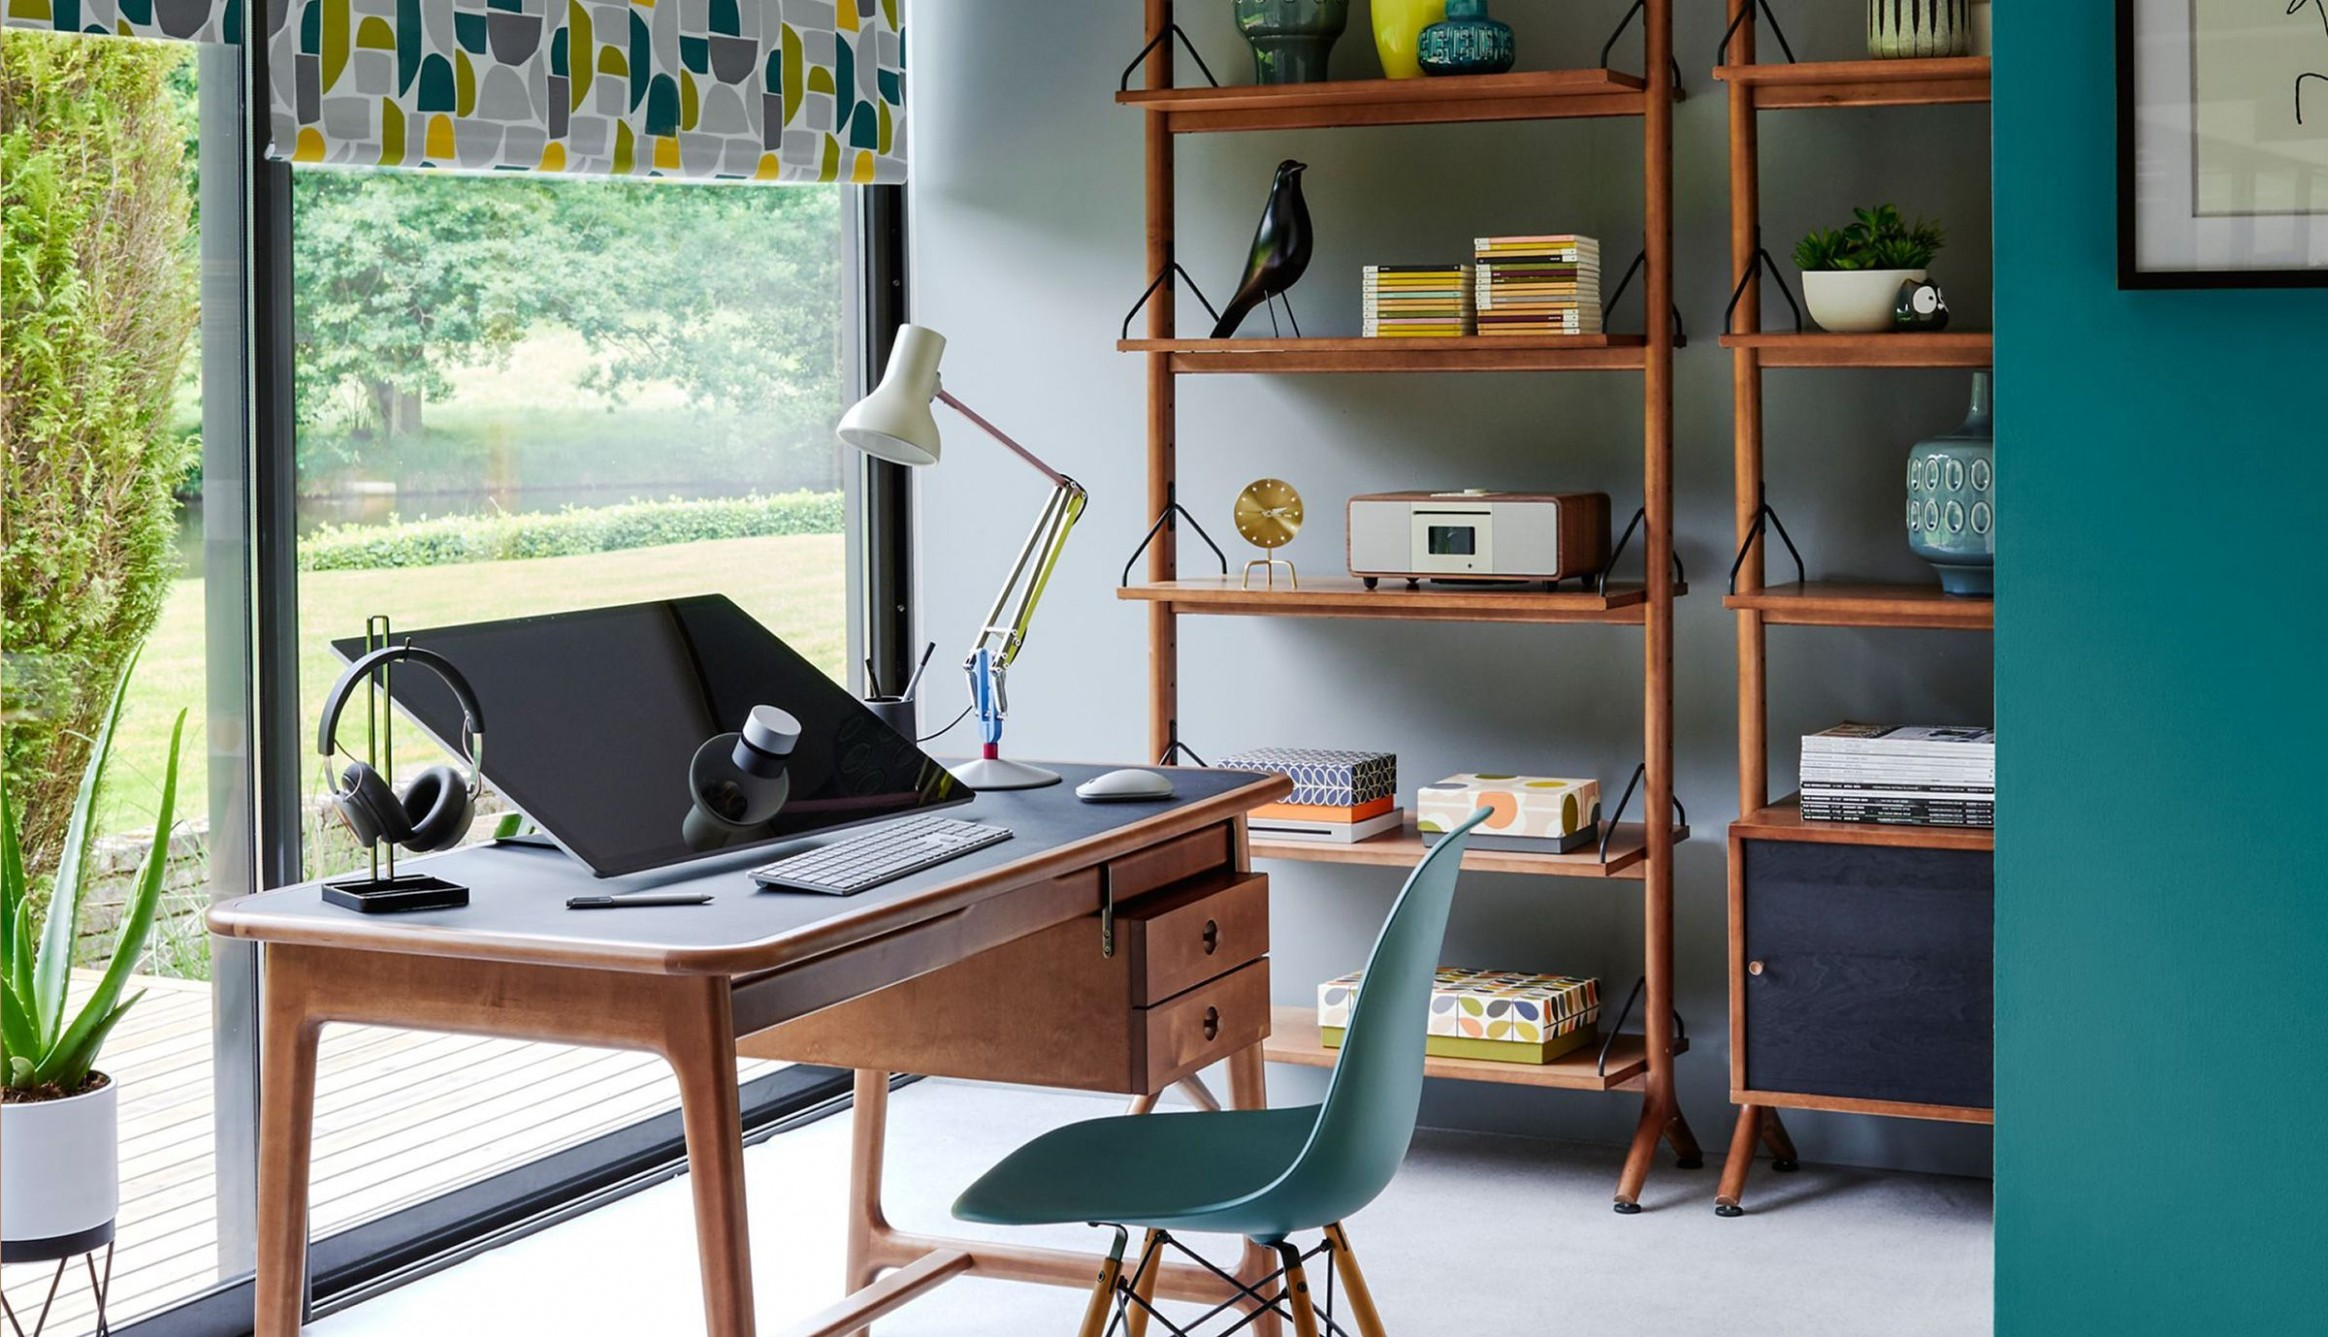 10 Future Home Office Inspiration - Houze Remodel  Interior  - John Lewis Home Office Ideas